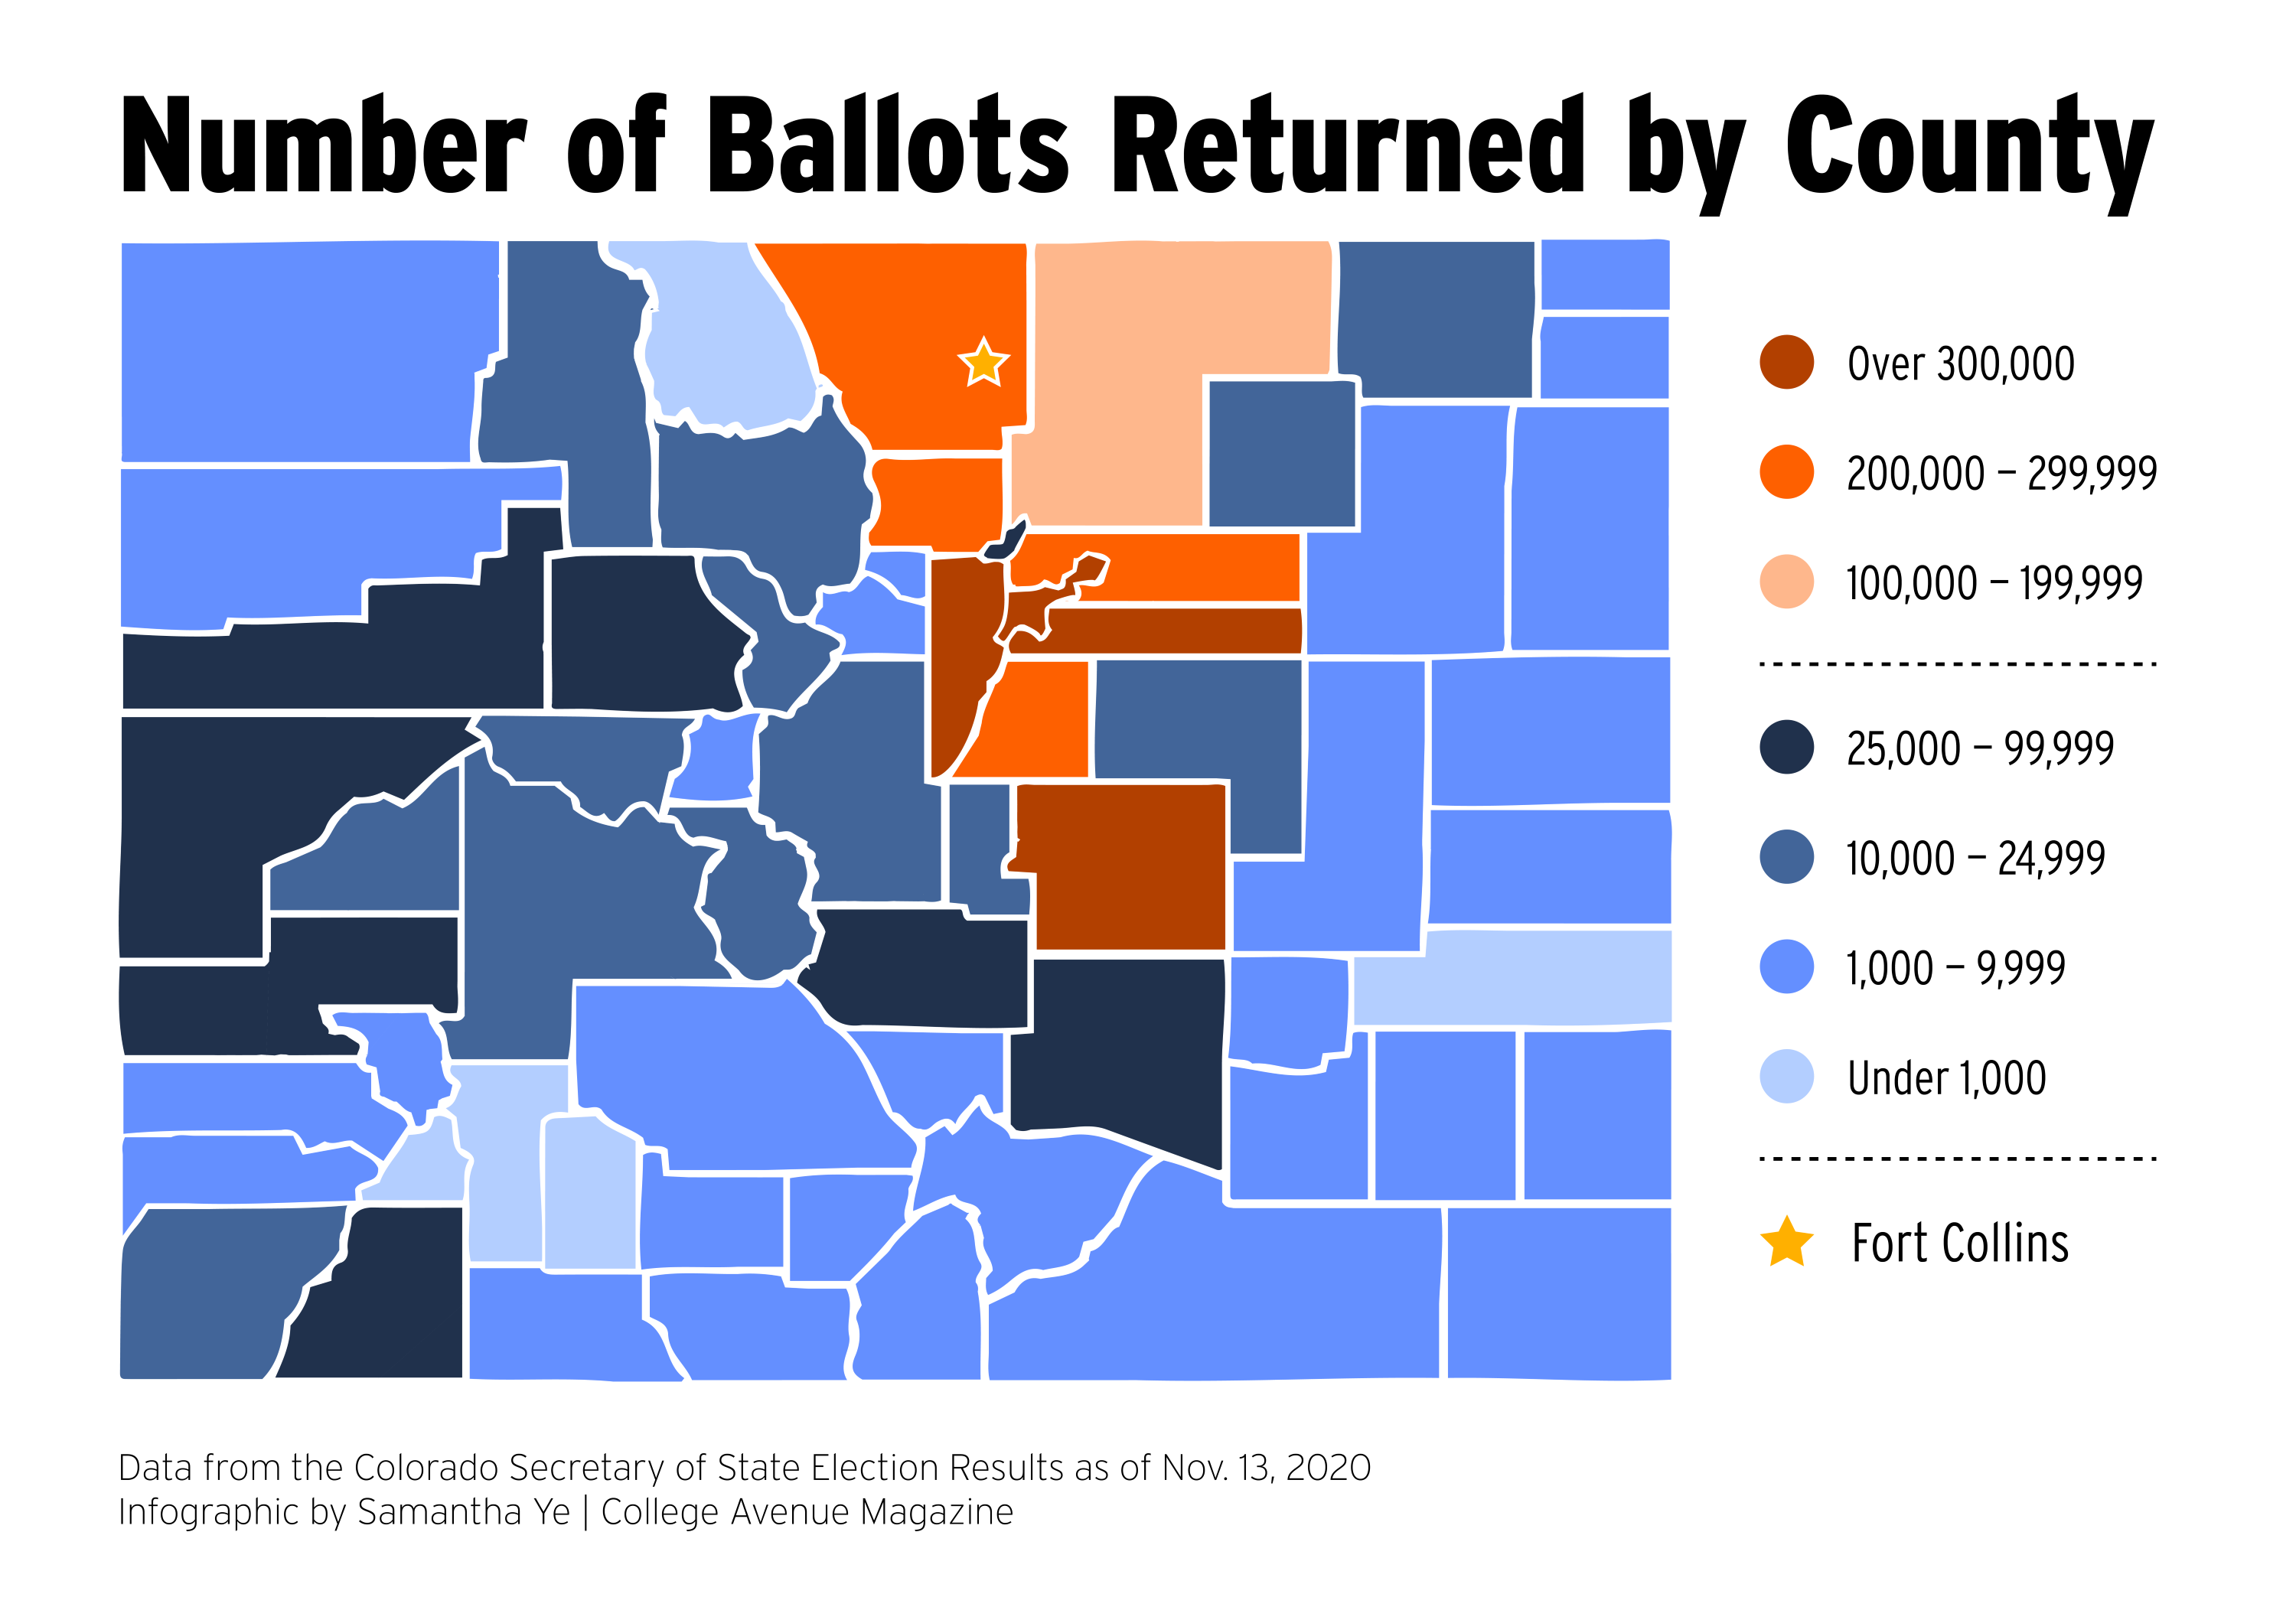 Number of Ballots Returned by County